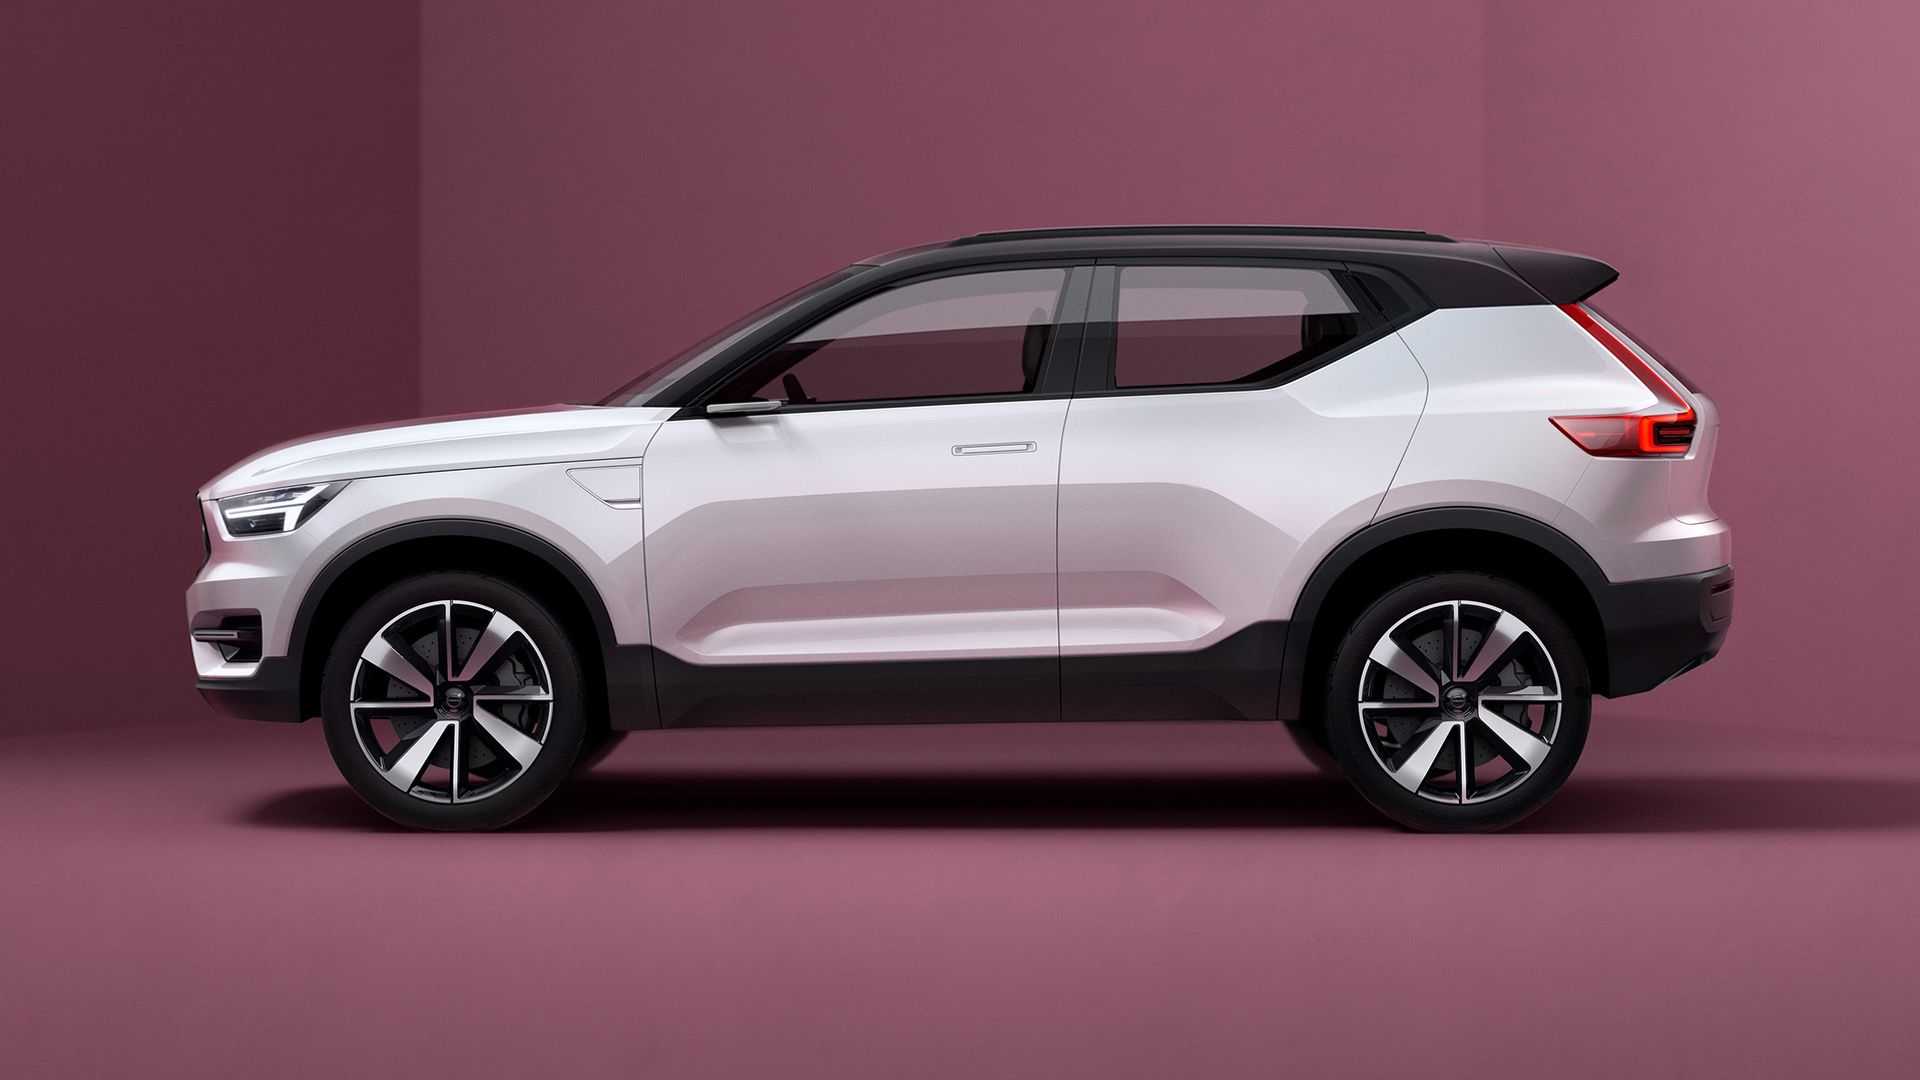 2018 Volvo Xc40 To Be Breakthrough Vehicle For Brand Volvo Xc90